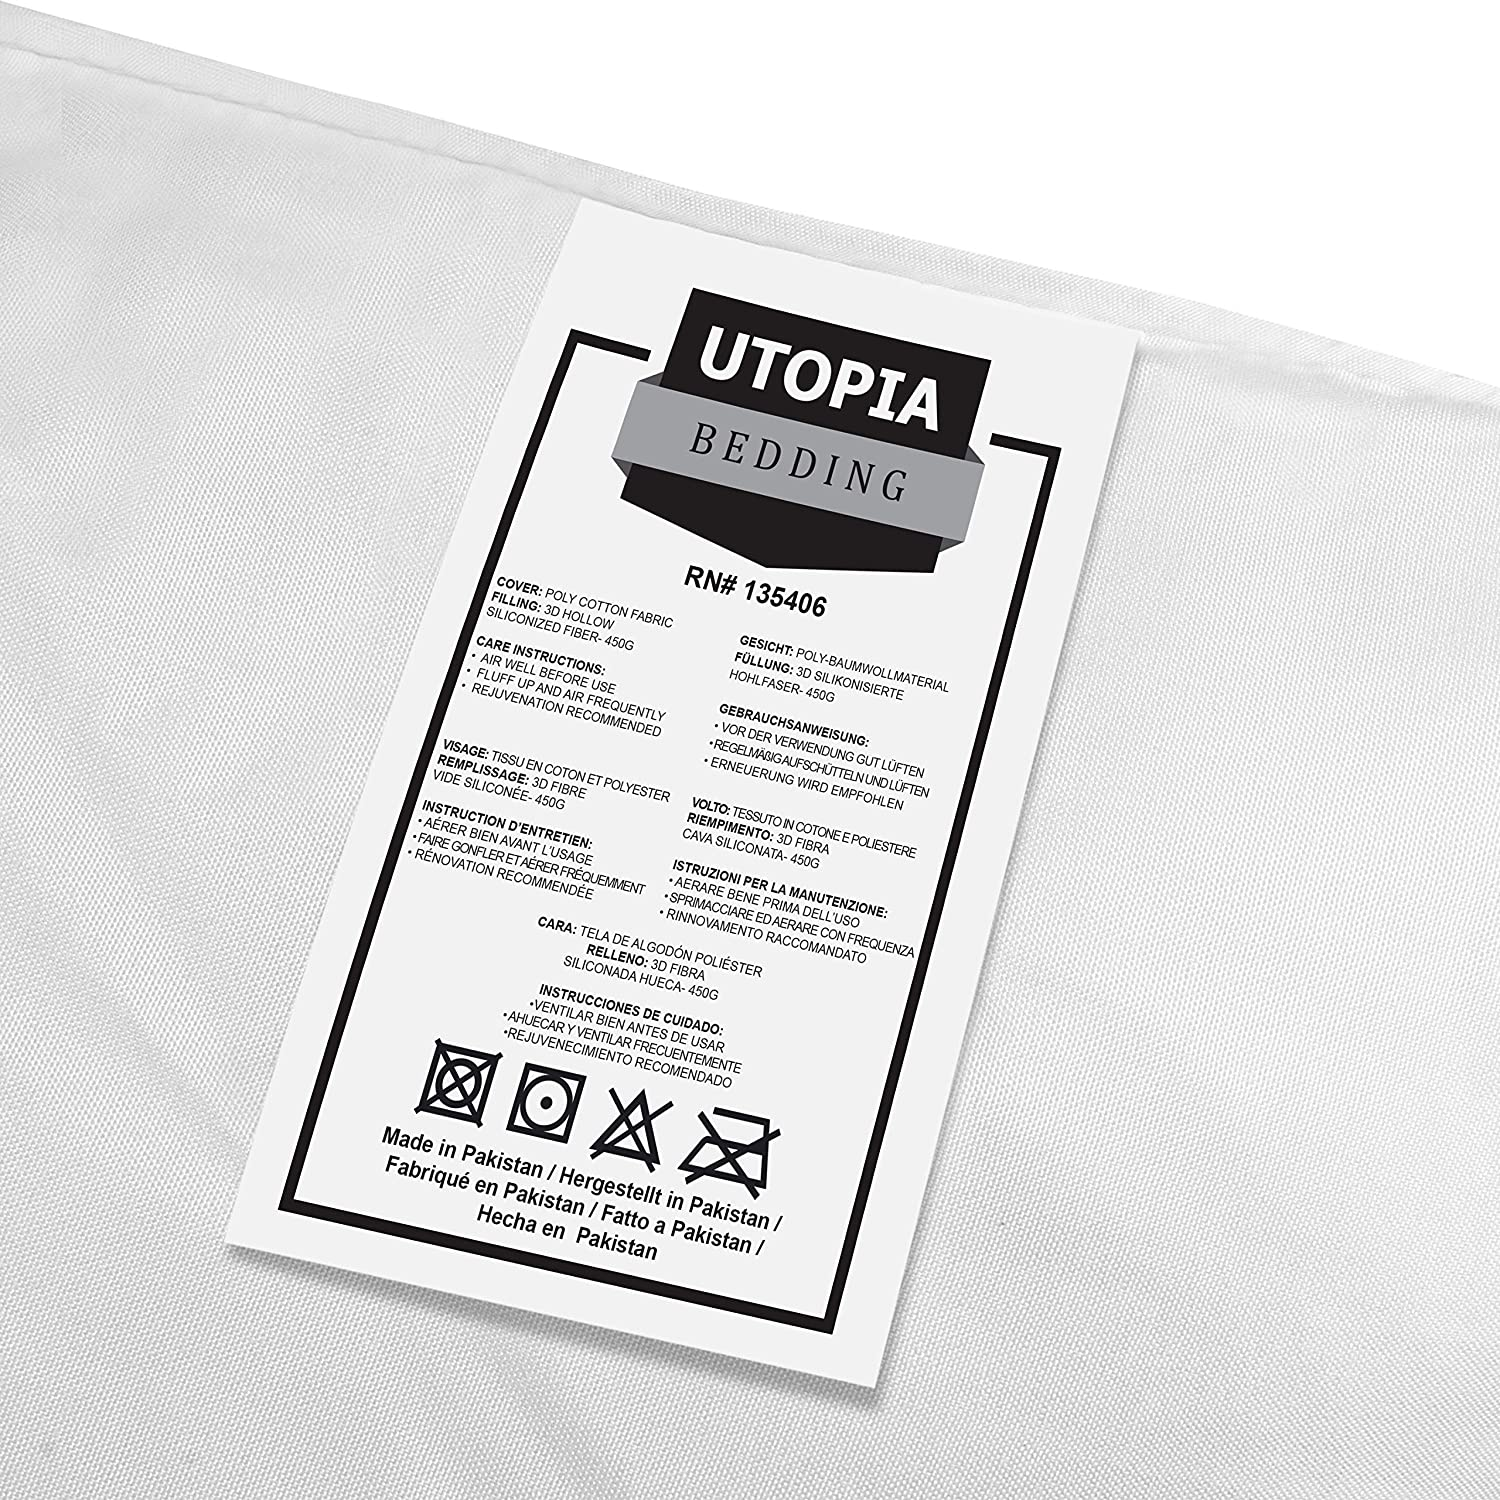 Polycotton Cover Utopia Bedding Cushion Inner Pads - Cushion Inserts 16 x 16 - Hollowfibre Cushion Fillers 40 x 40 cm Pack of 2, White